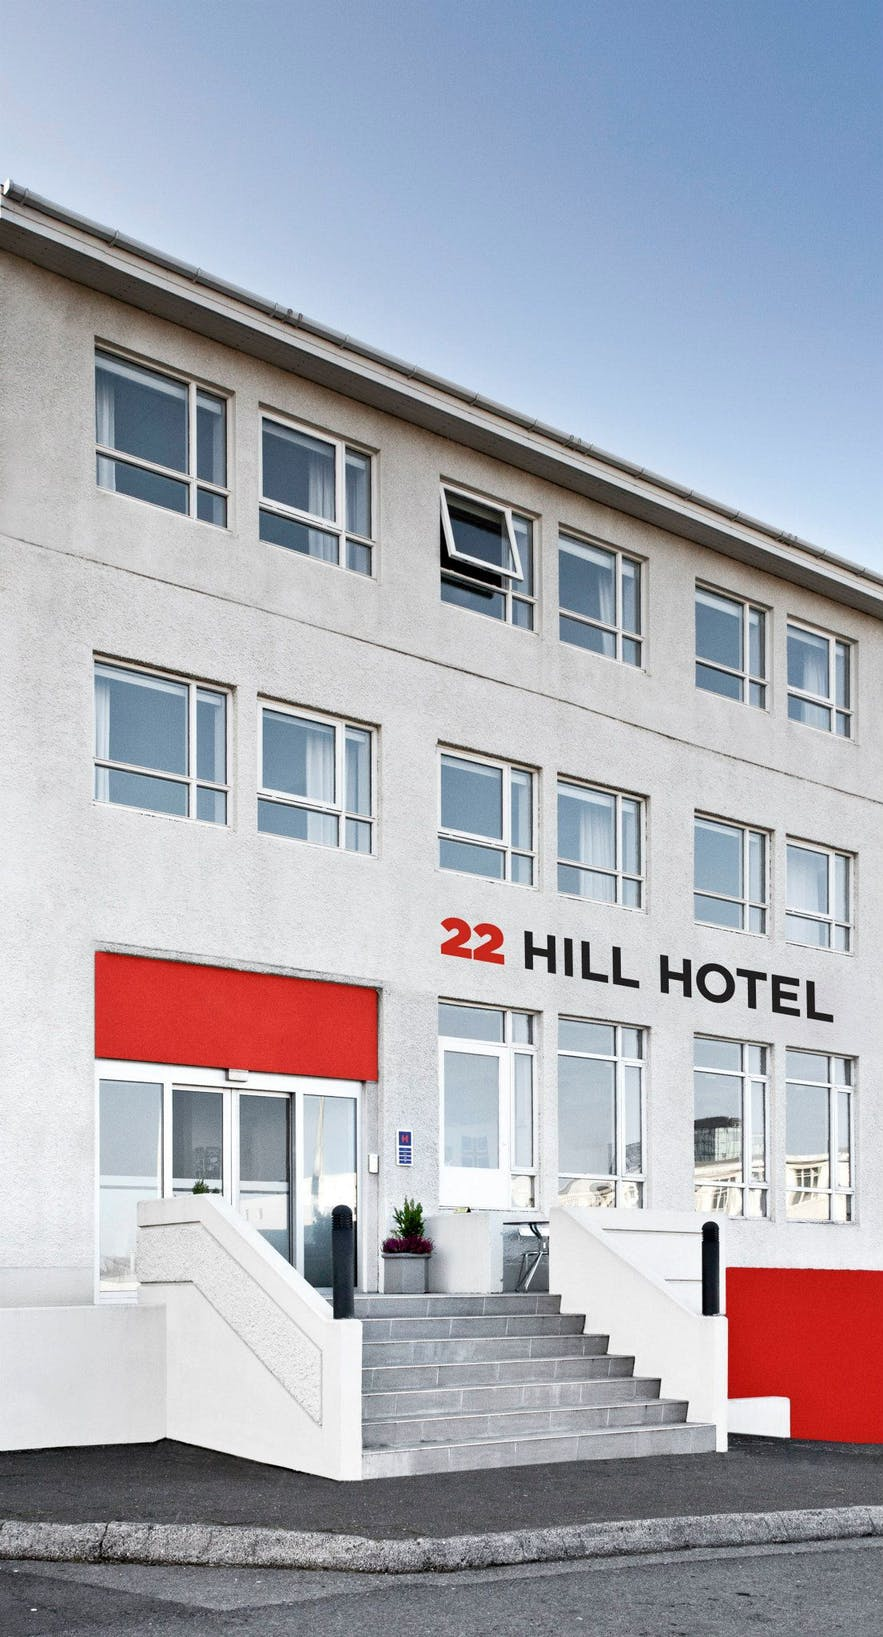 22 Hill Hotel is a little out of the downtown, but still within easy walking distance.